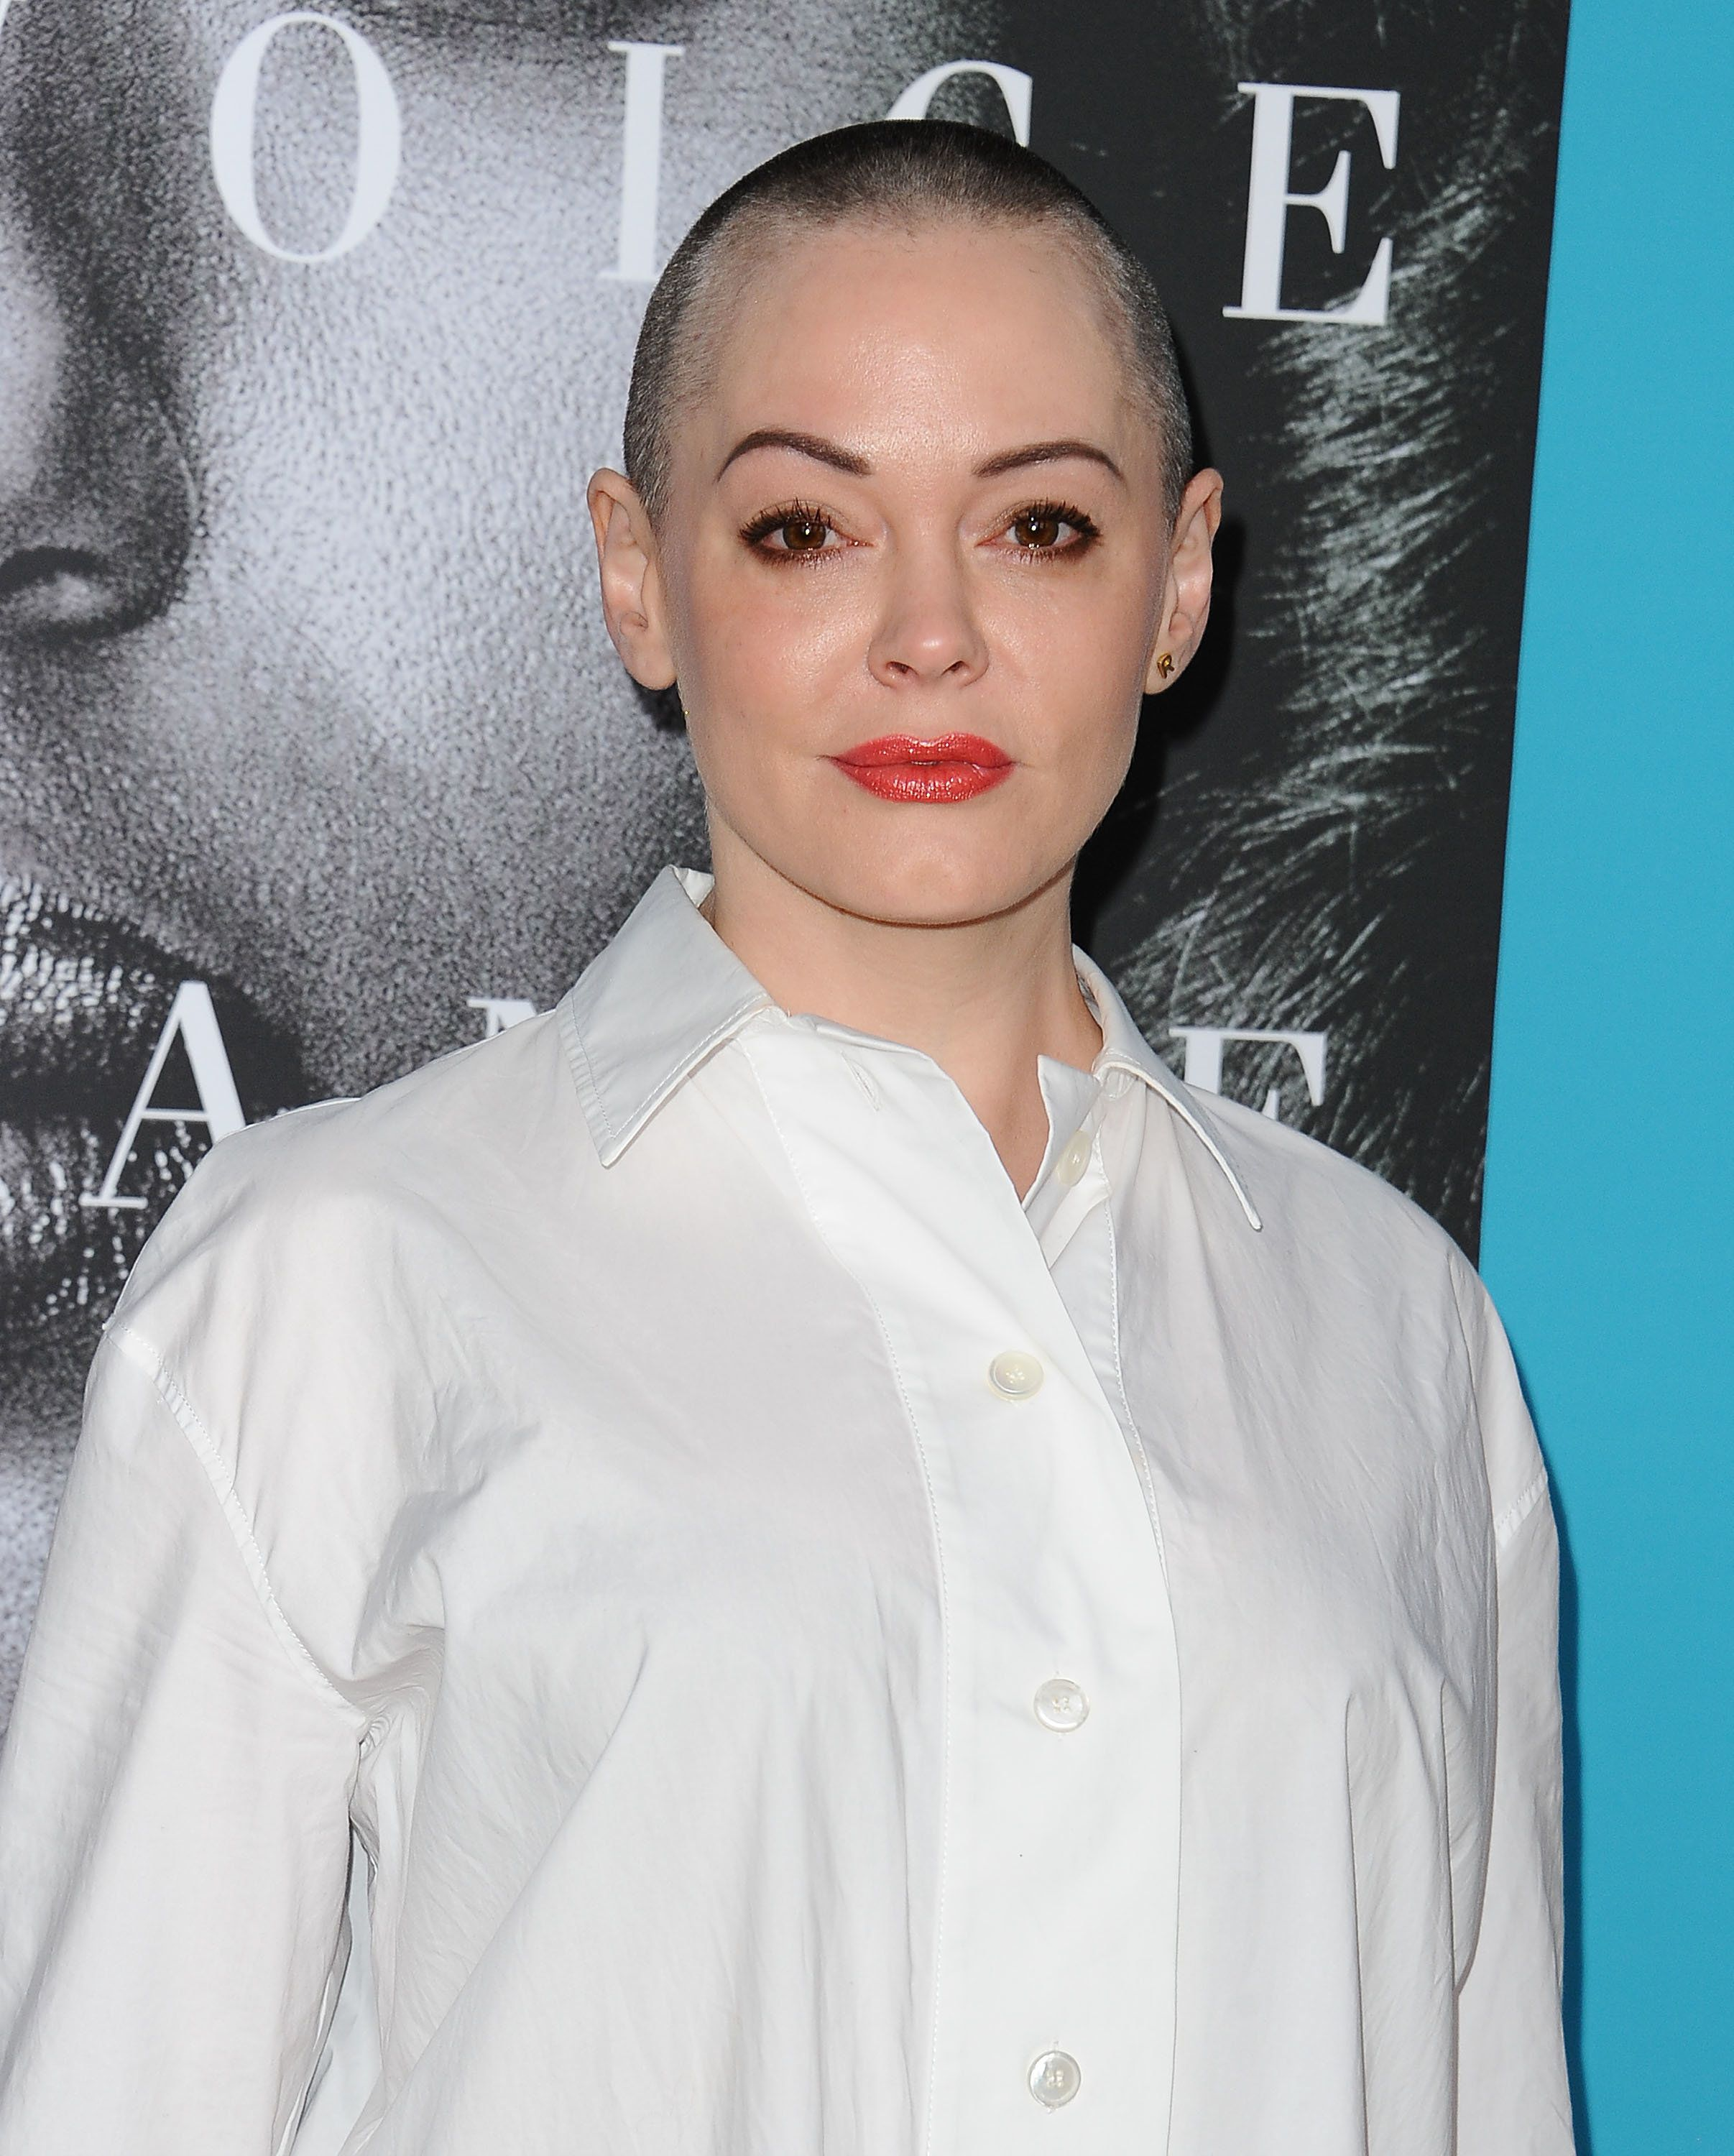 #WomanBoycottTwitter as Rose McGowan's account gets suspended